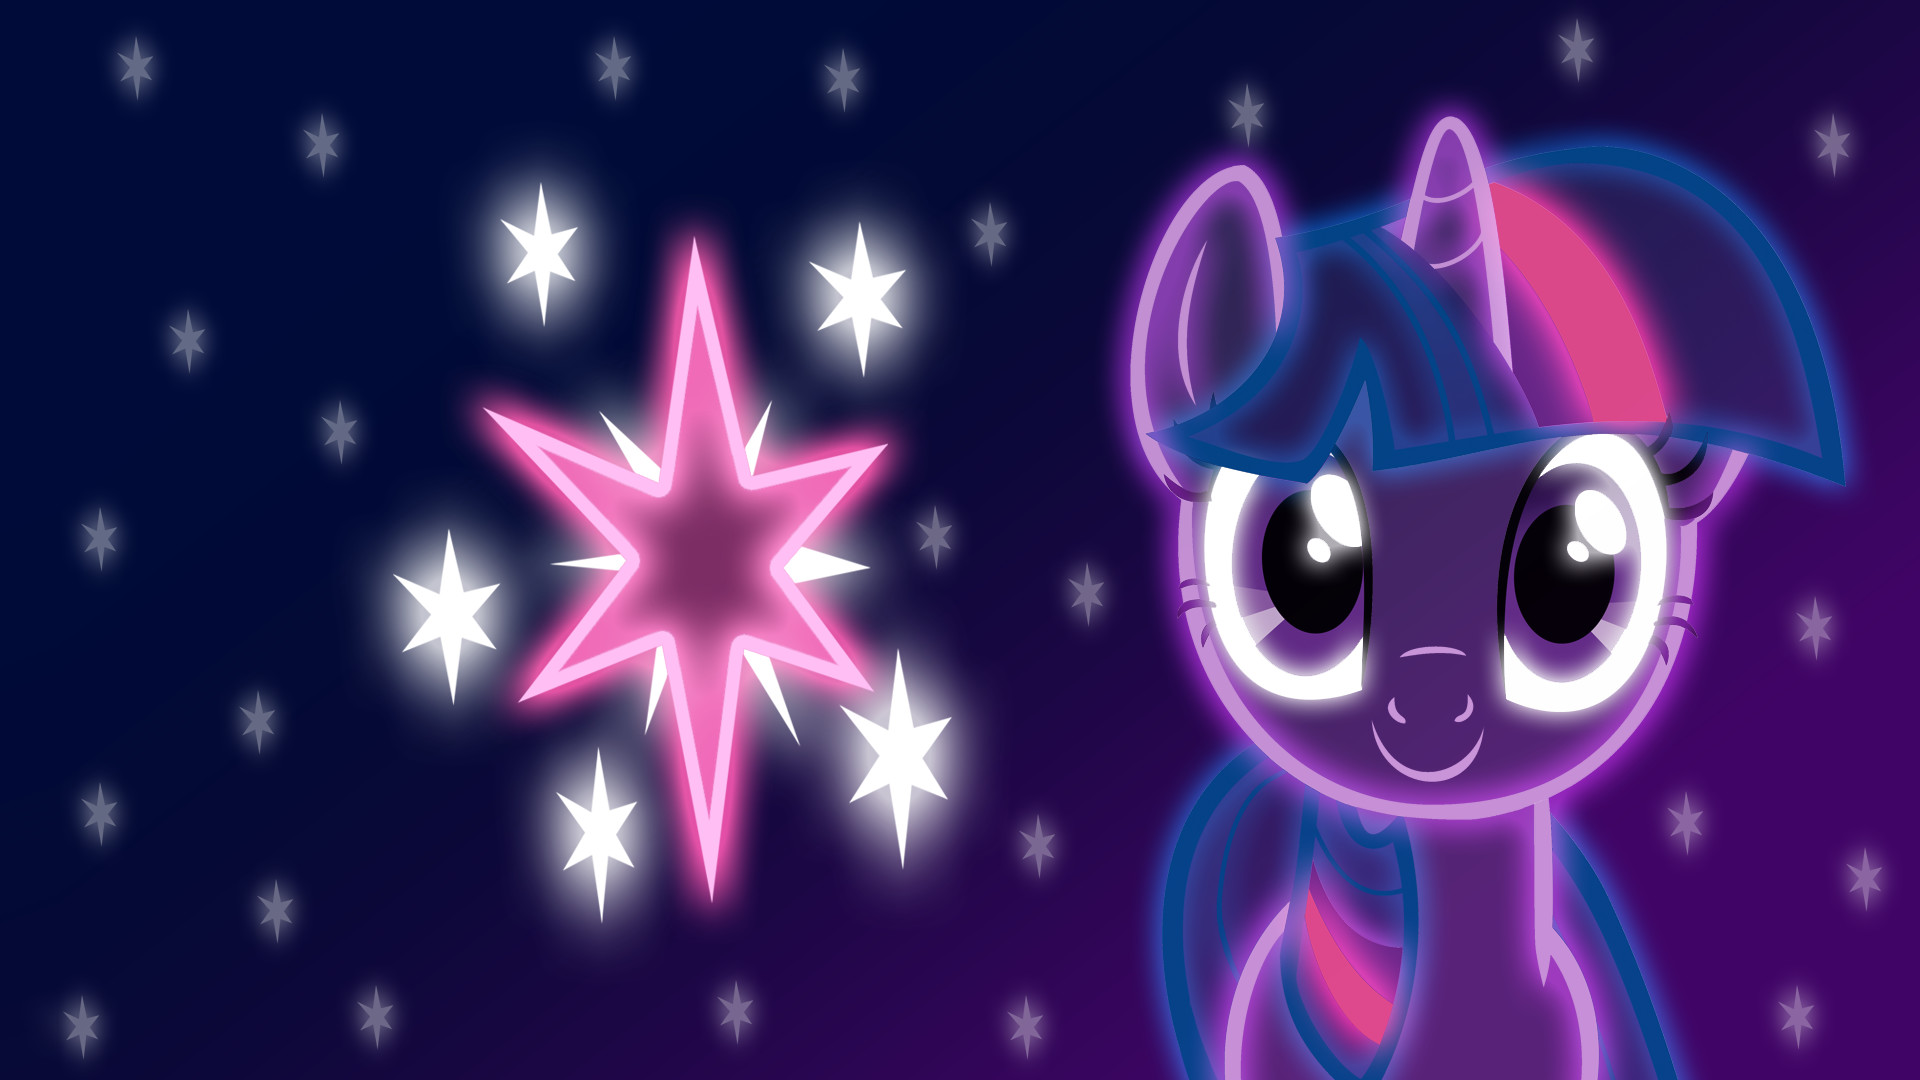 Res: 1920x1080, Neon Twilight Sparkle Wallpaper by ZantyARZ Neon Twilight Sparkle Wallpaper  by ZantyARZ